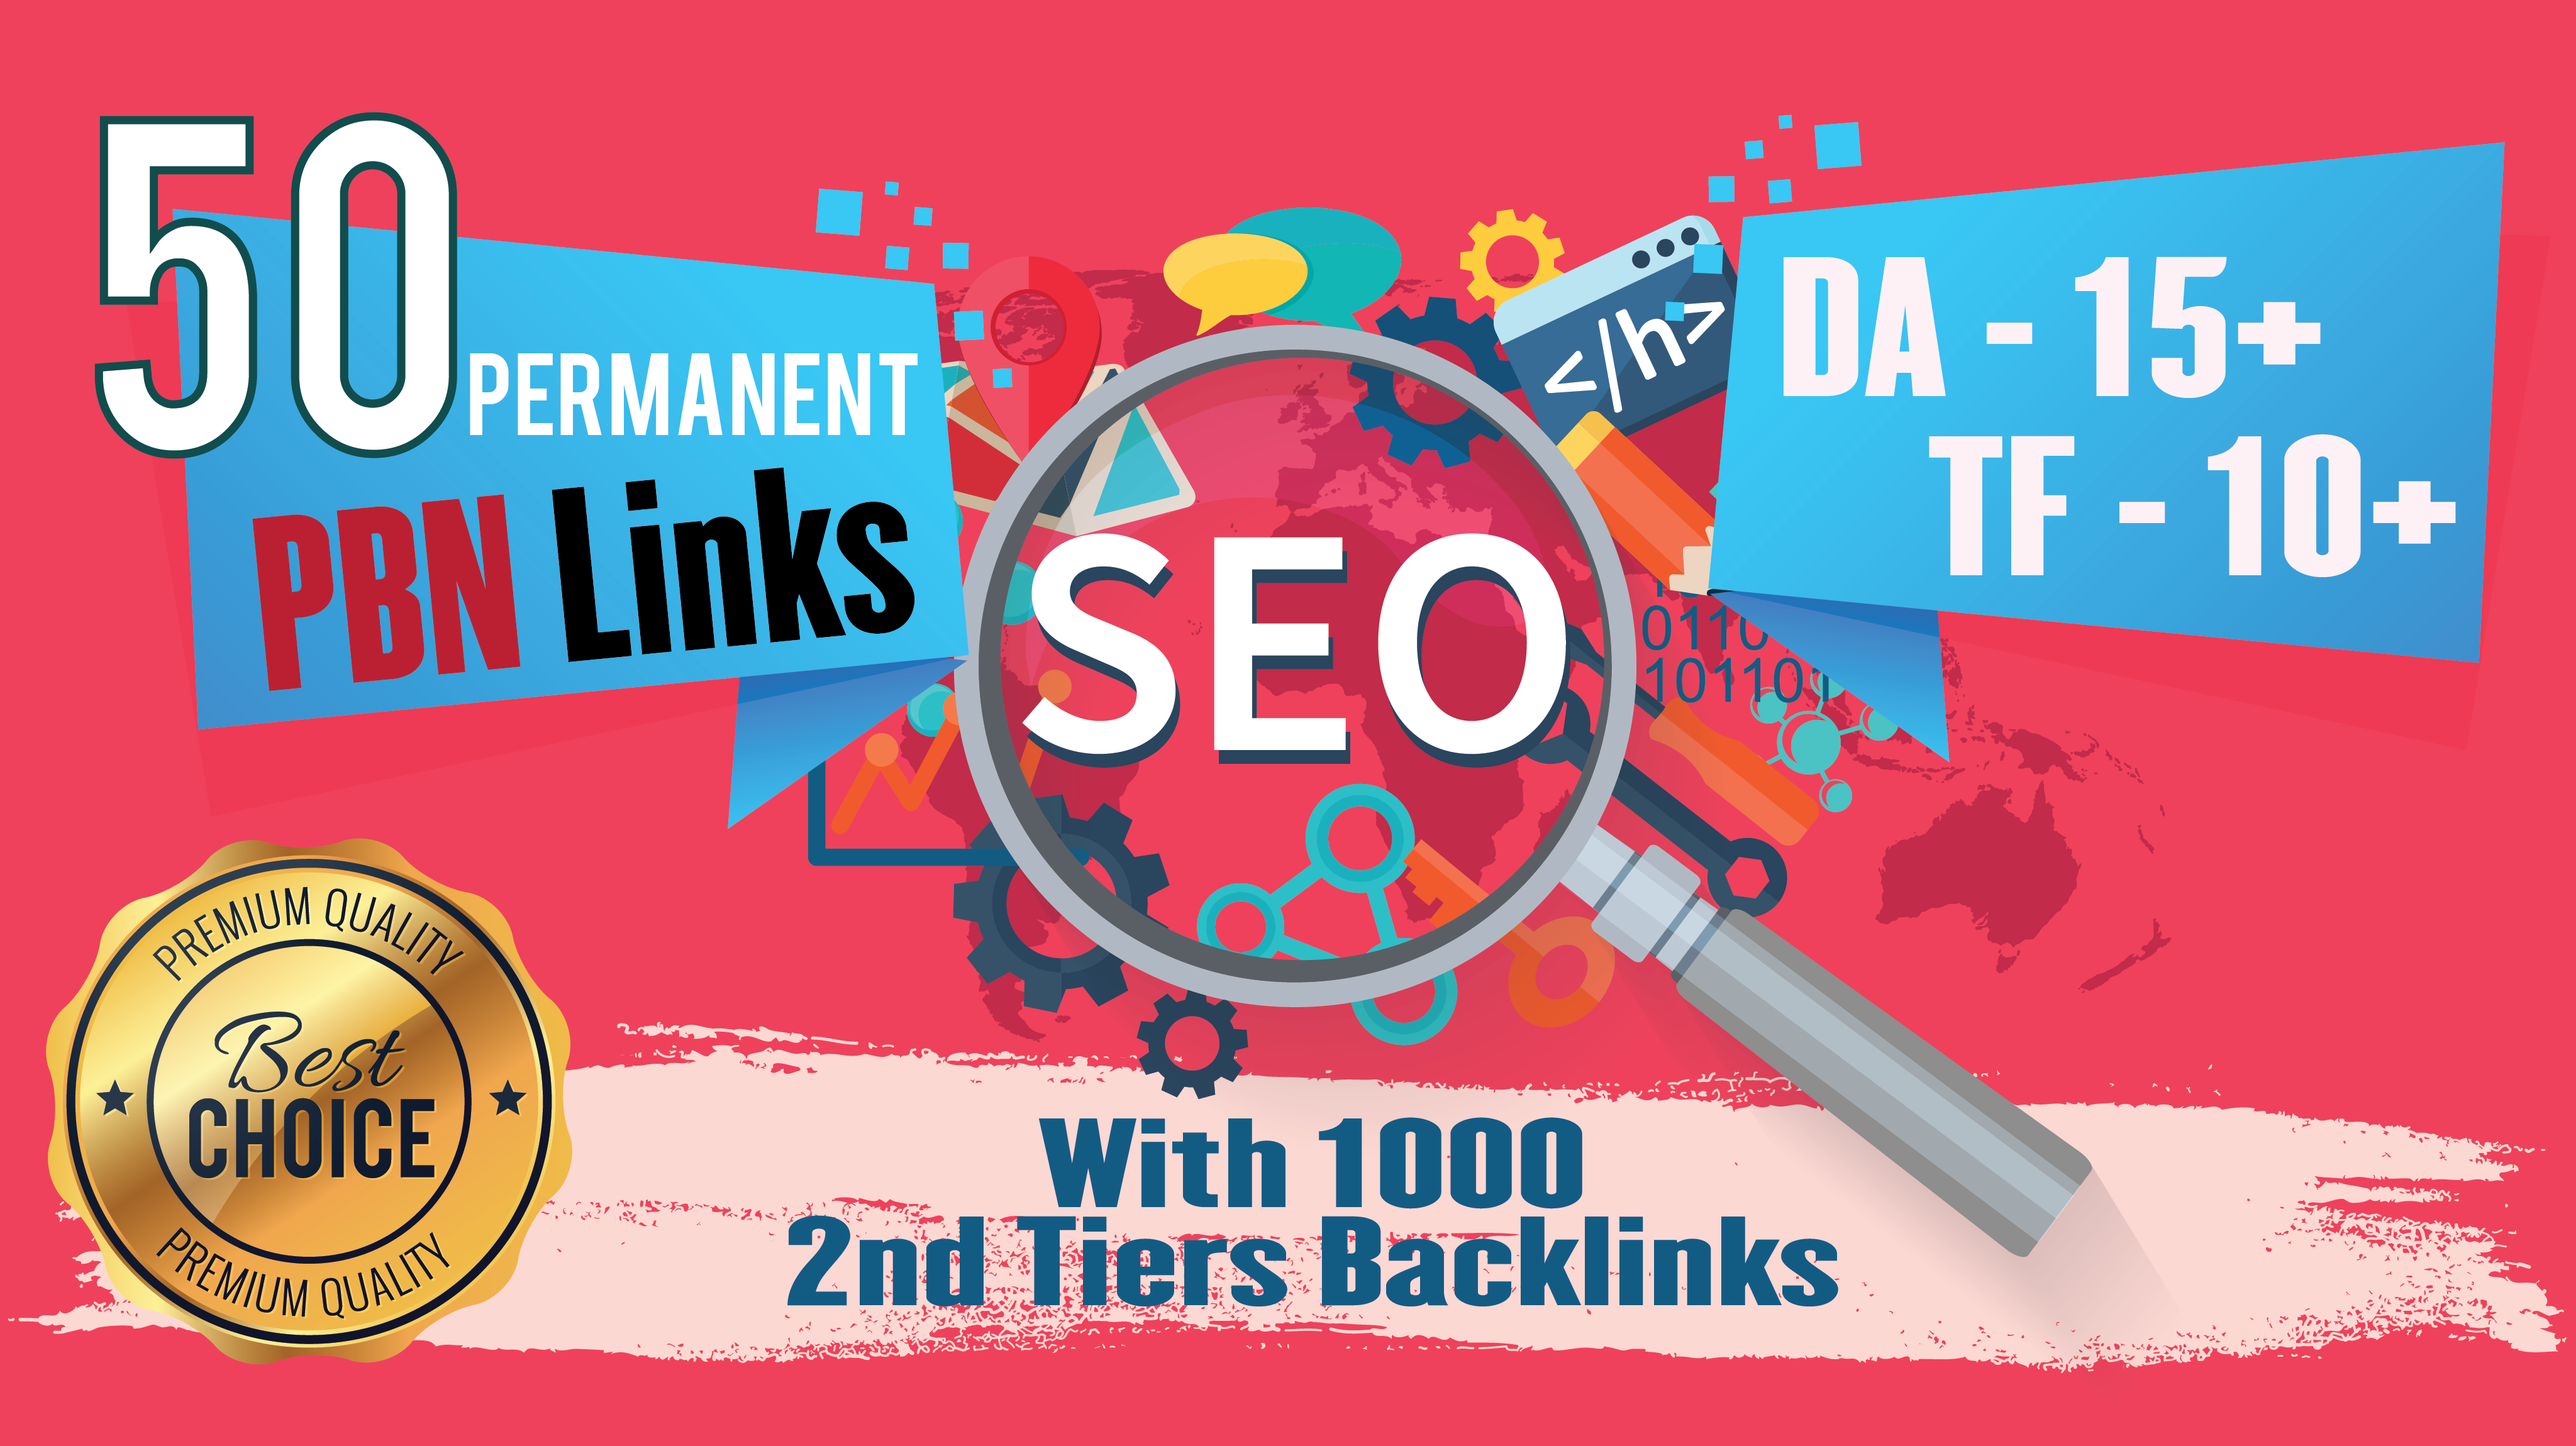 2020 Powerful 50 Homepage Dofollow PBN With 1000 2nd Tiers Backlink google 1st